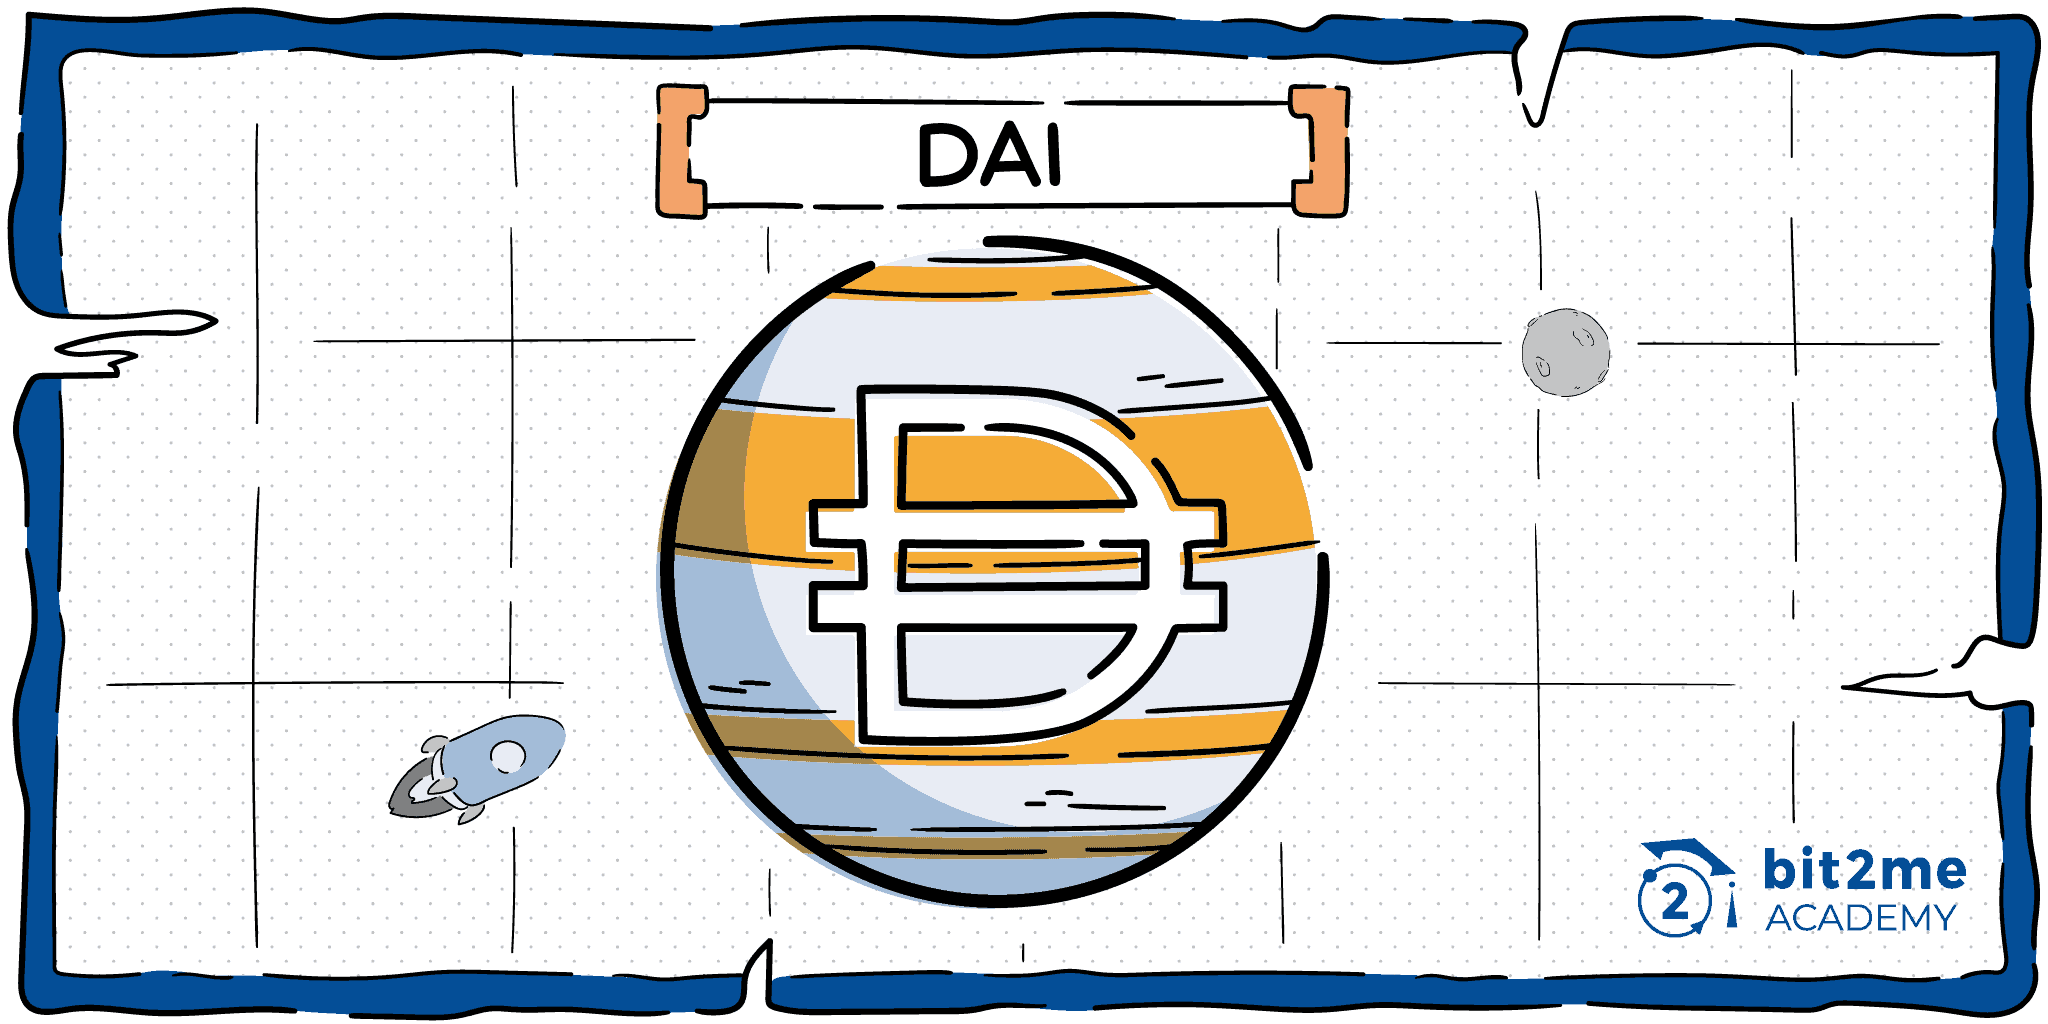 DAI cryptocurrency